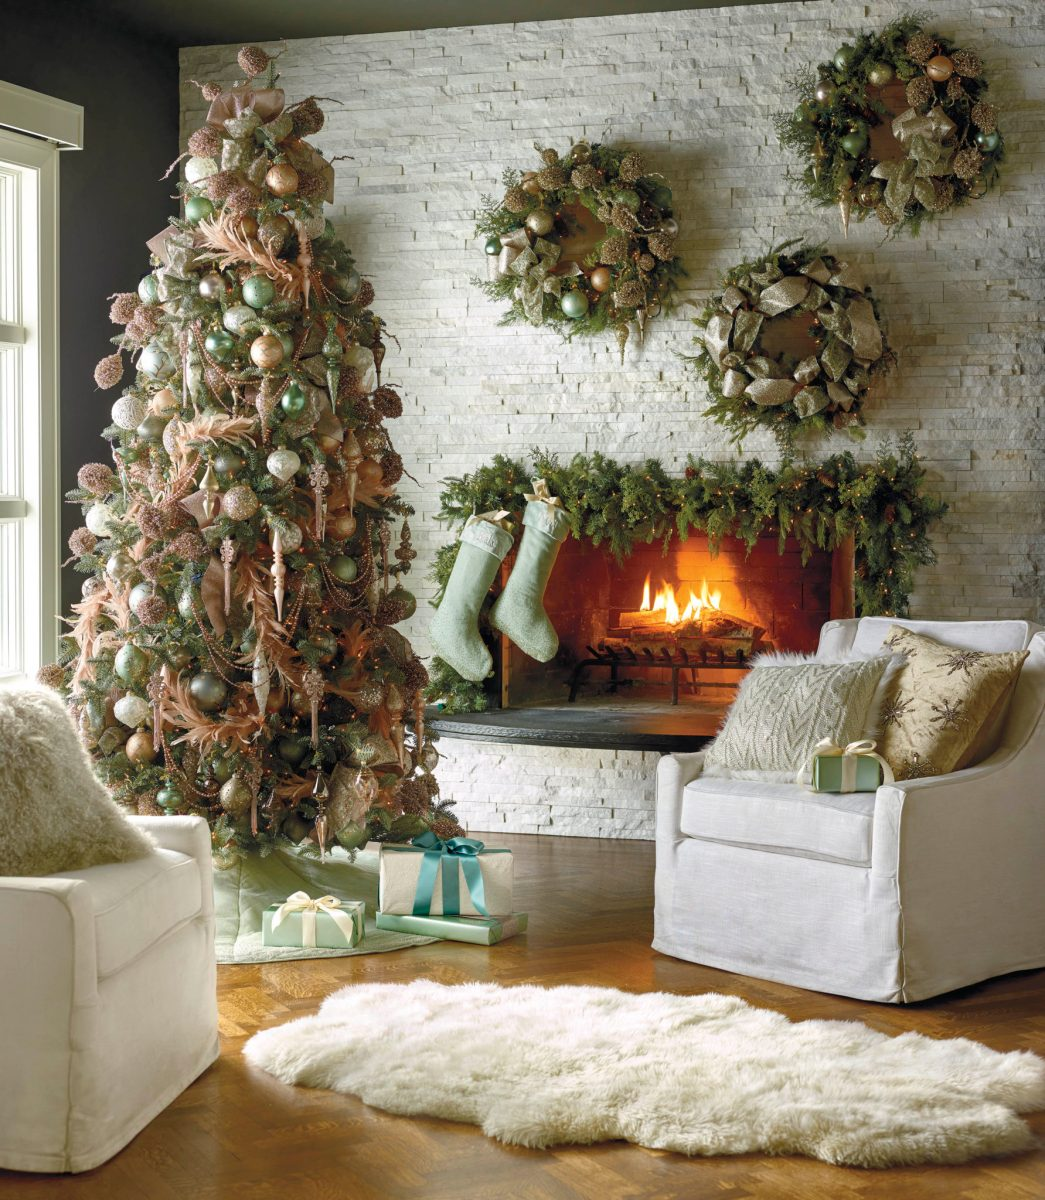 Holiday Ornaments We Love and How to Store Your Holiday Decor